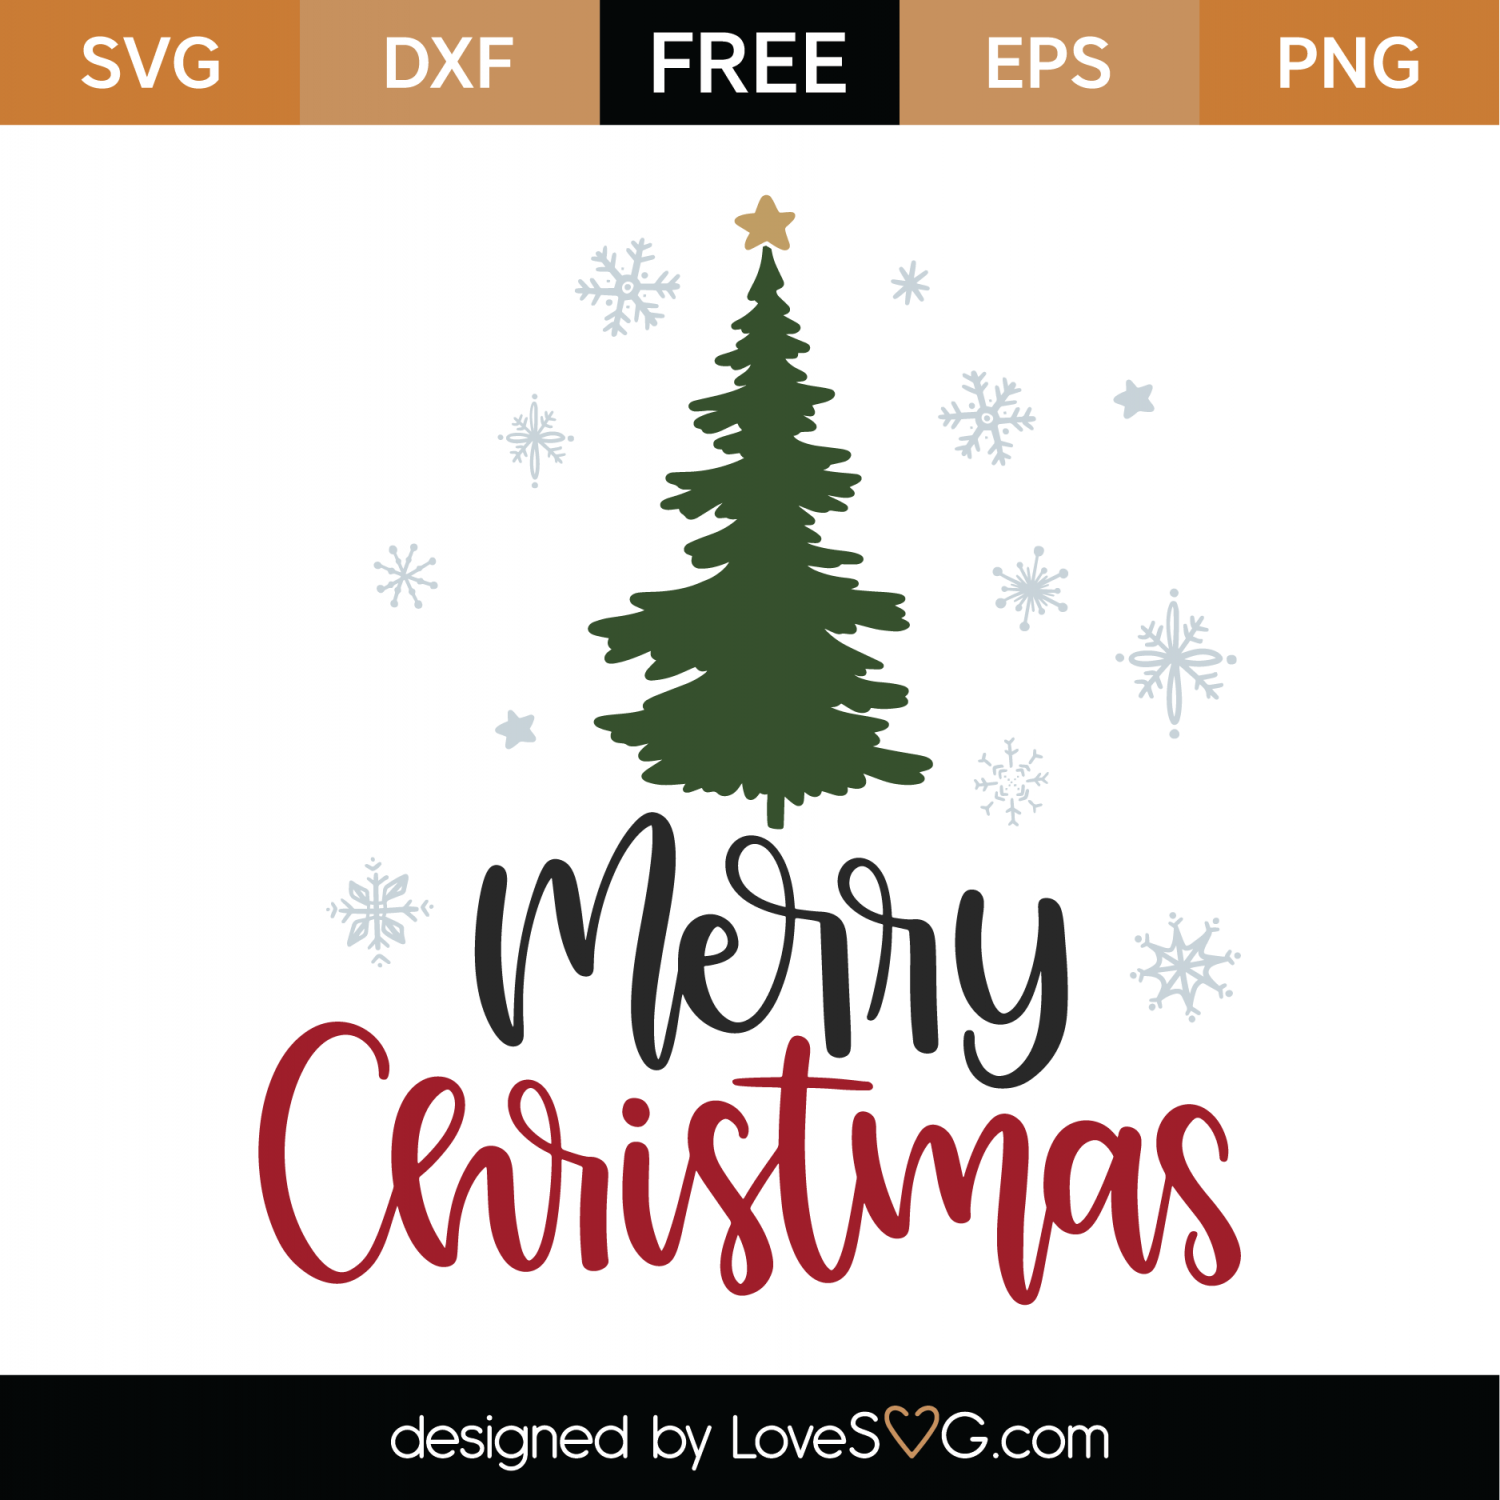 merry christmas svg free #392, Download drawings